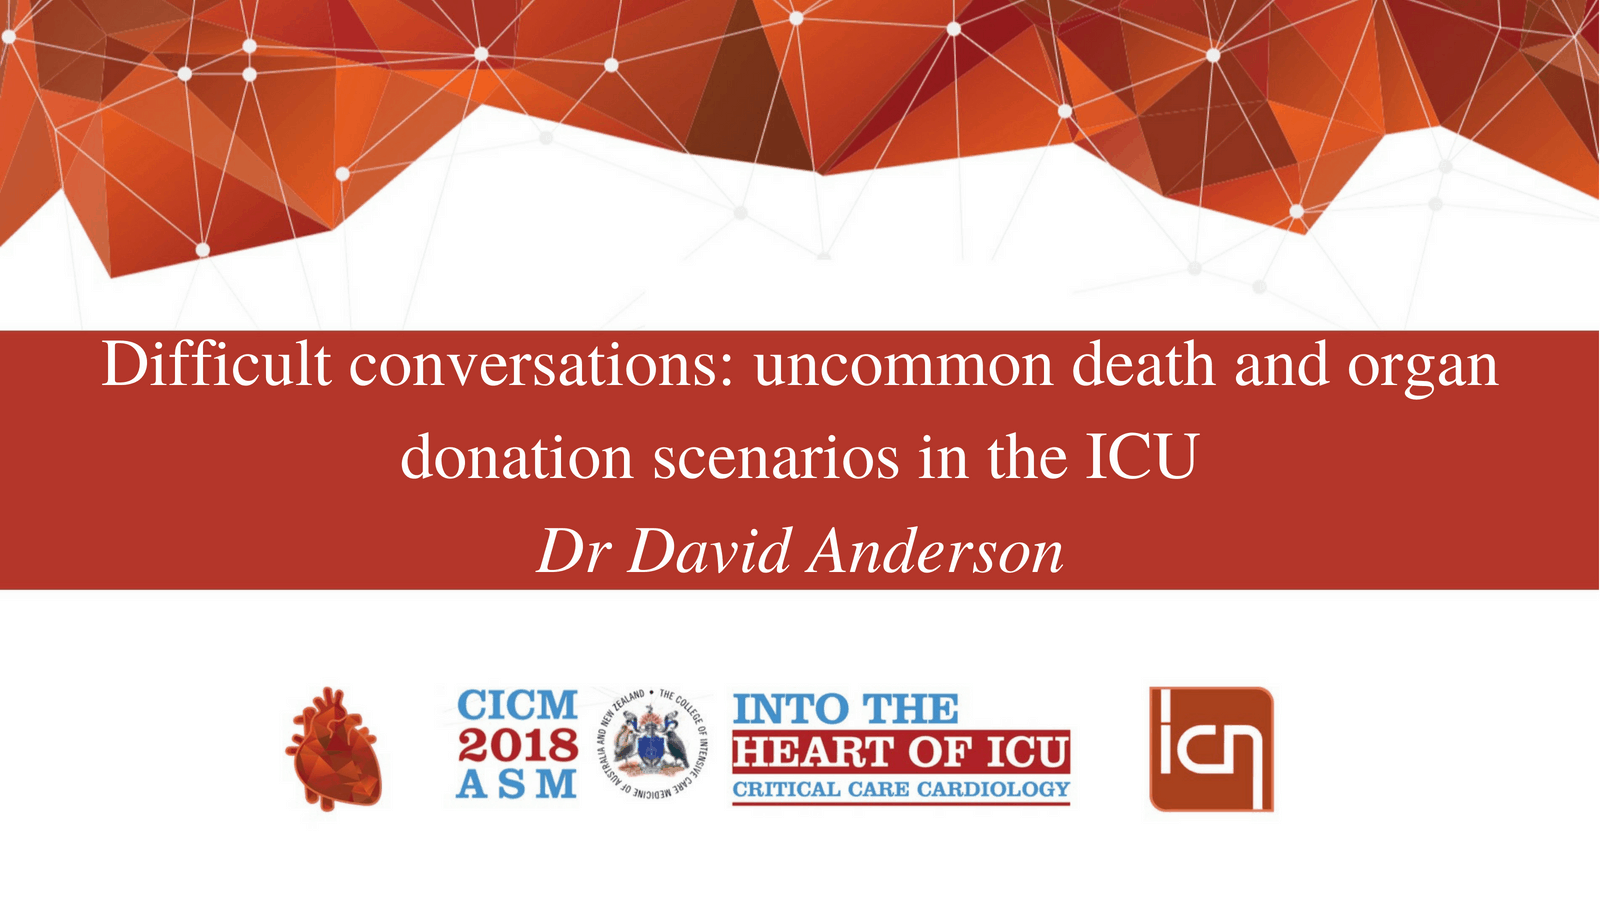 Difficult conversations: uncommon death and organ donation scenarios in the ICU.